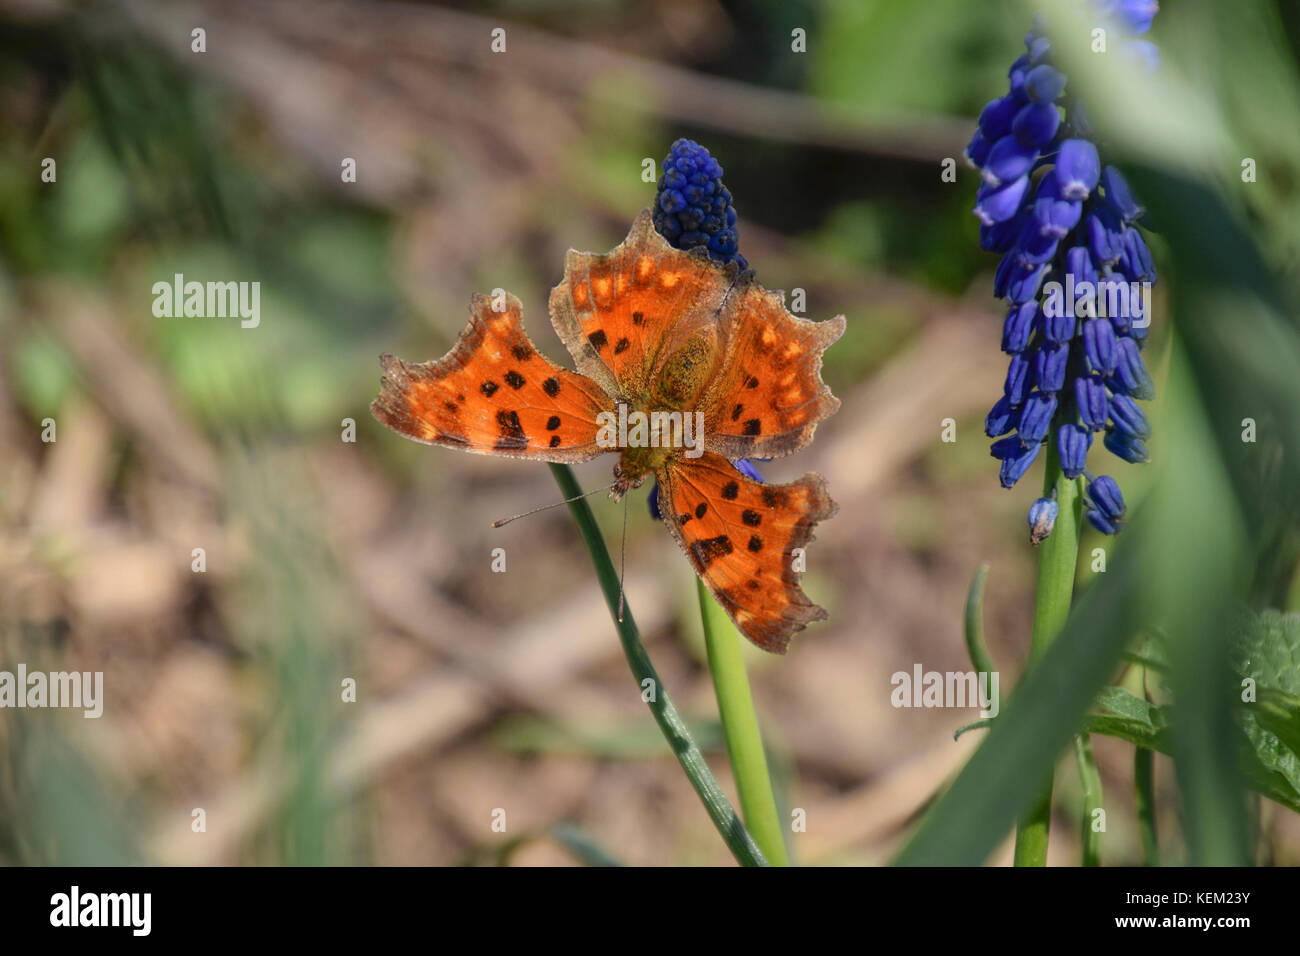 Polygonia c-album on a flower. Butterfly drinking the nectar of the flower. - Stock Image